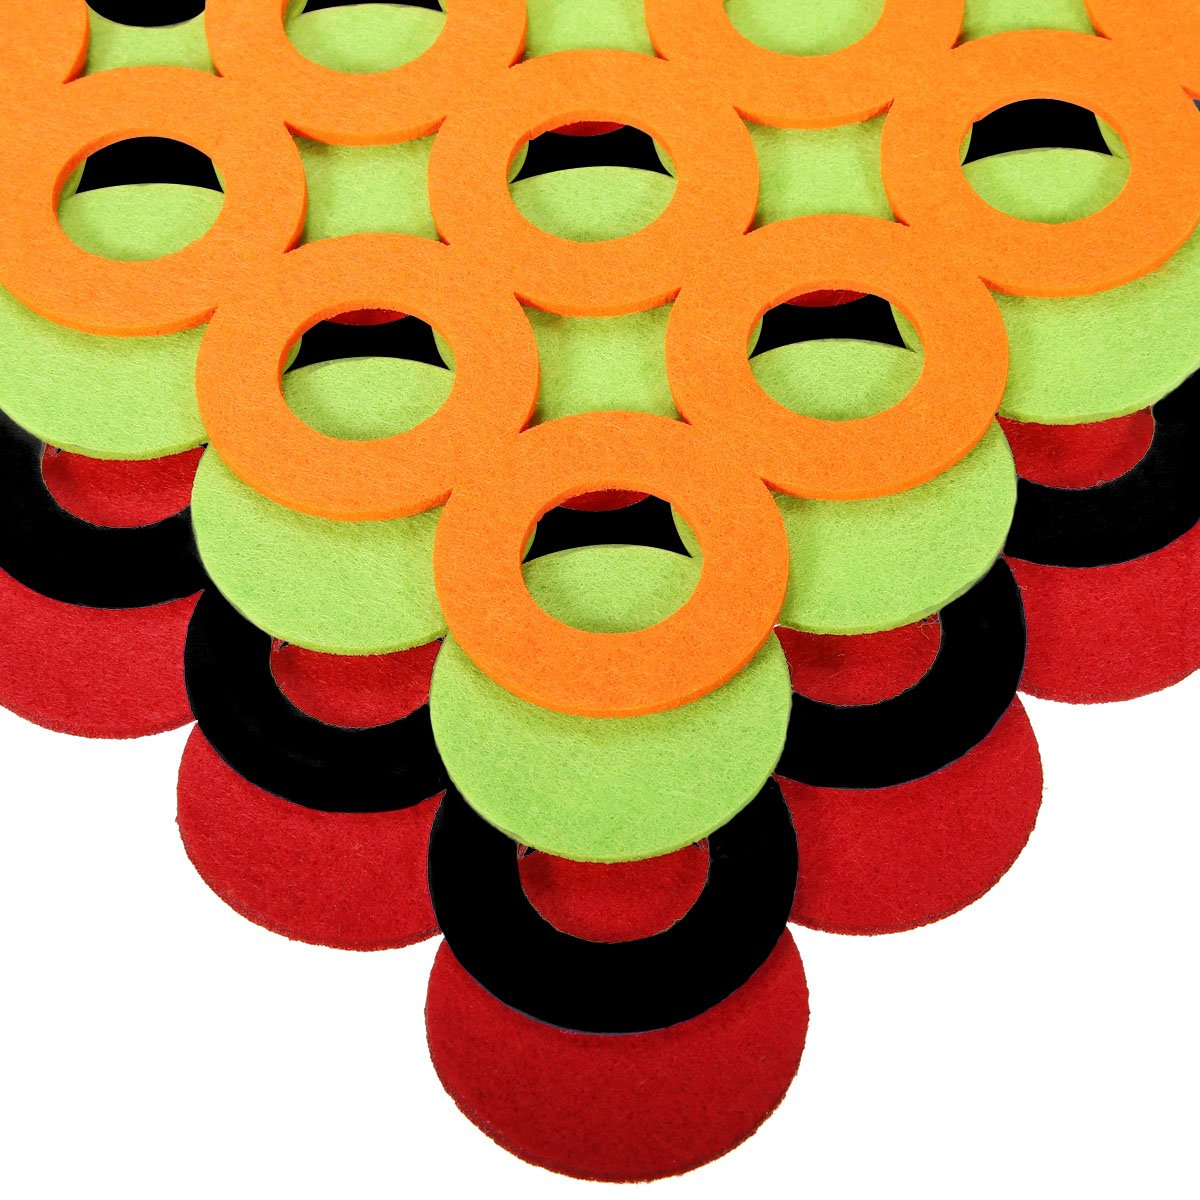 Jeteven 4 Pcs Hollow Placemat Table Cup Mats Non-woven Place Mats Dining Table Coffee Table Multicolor